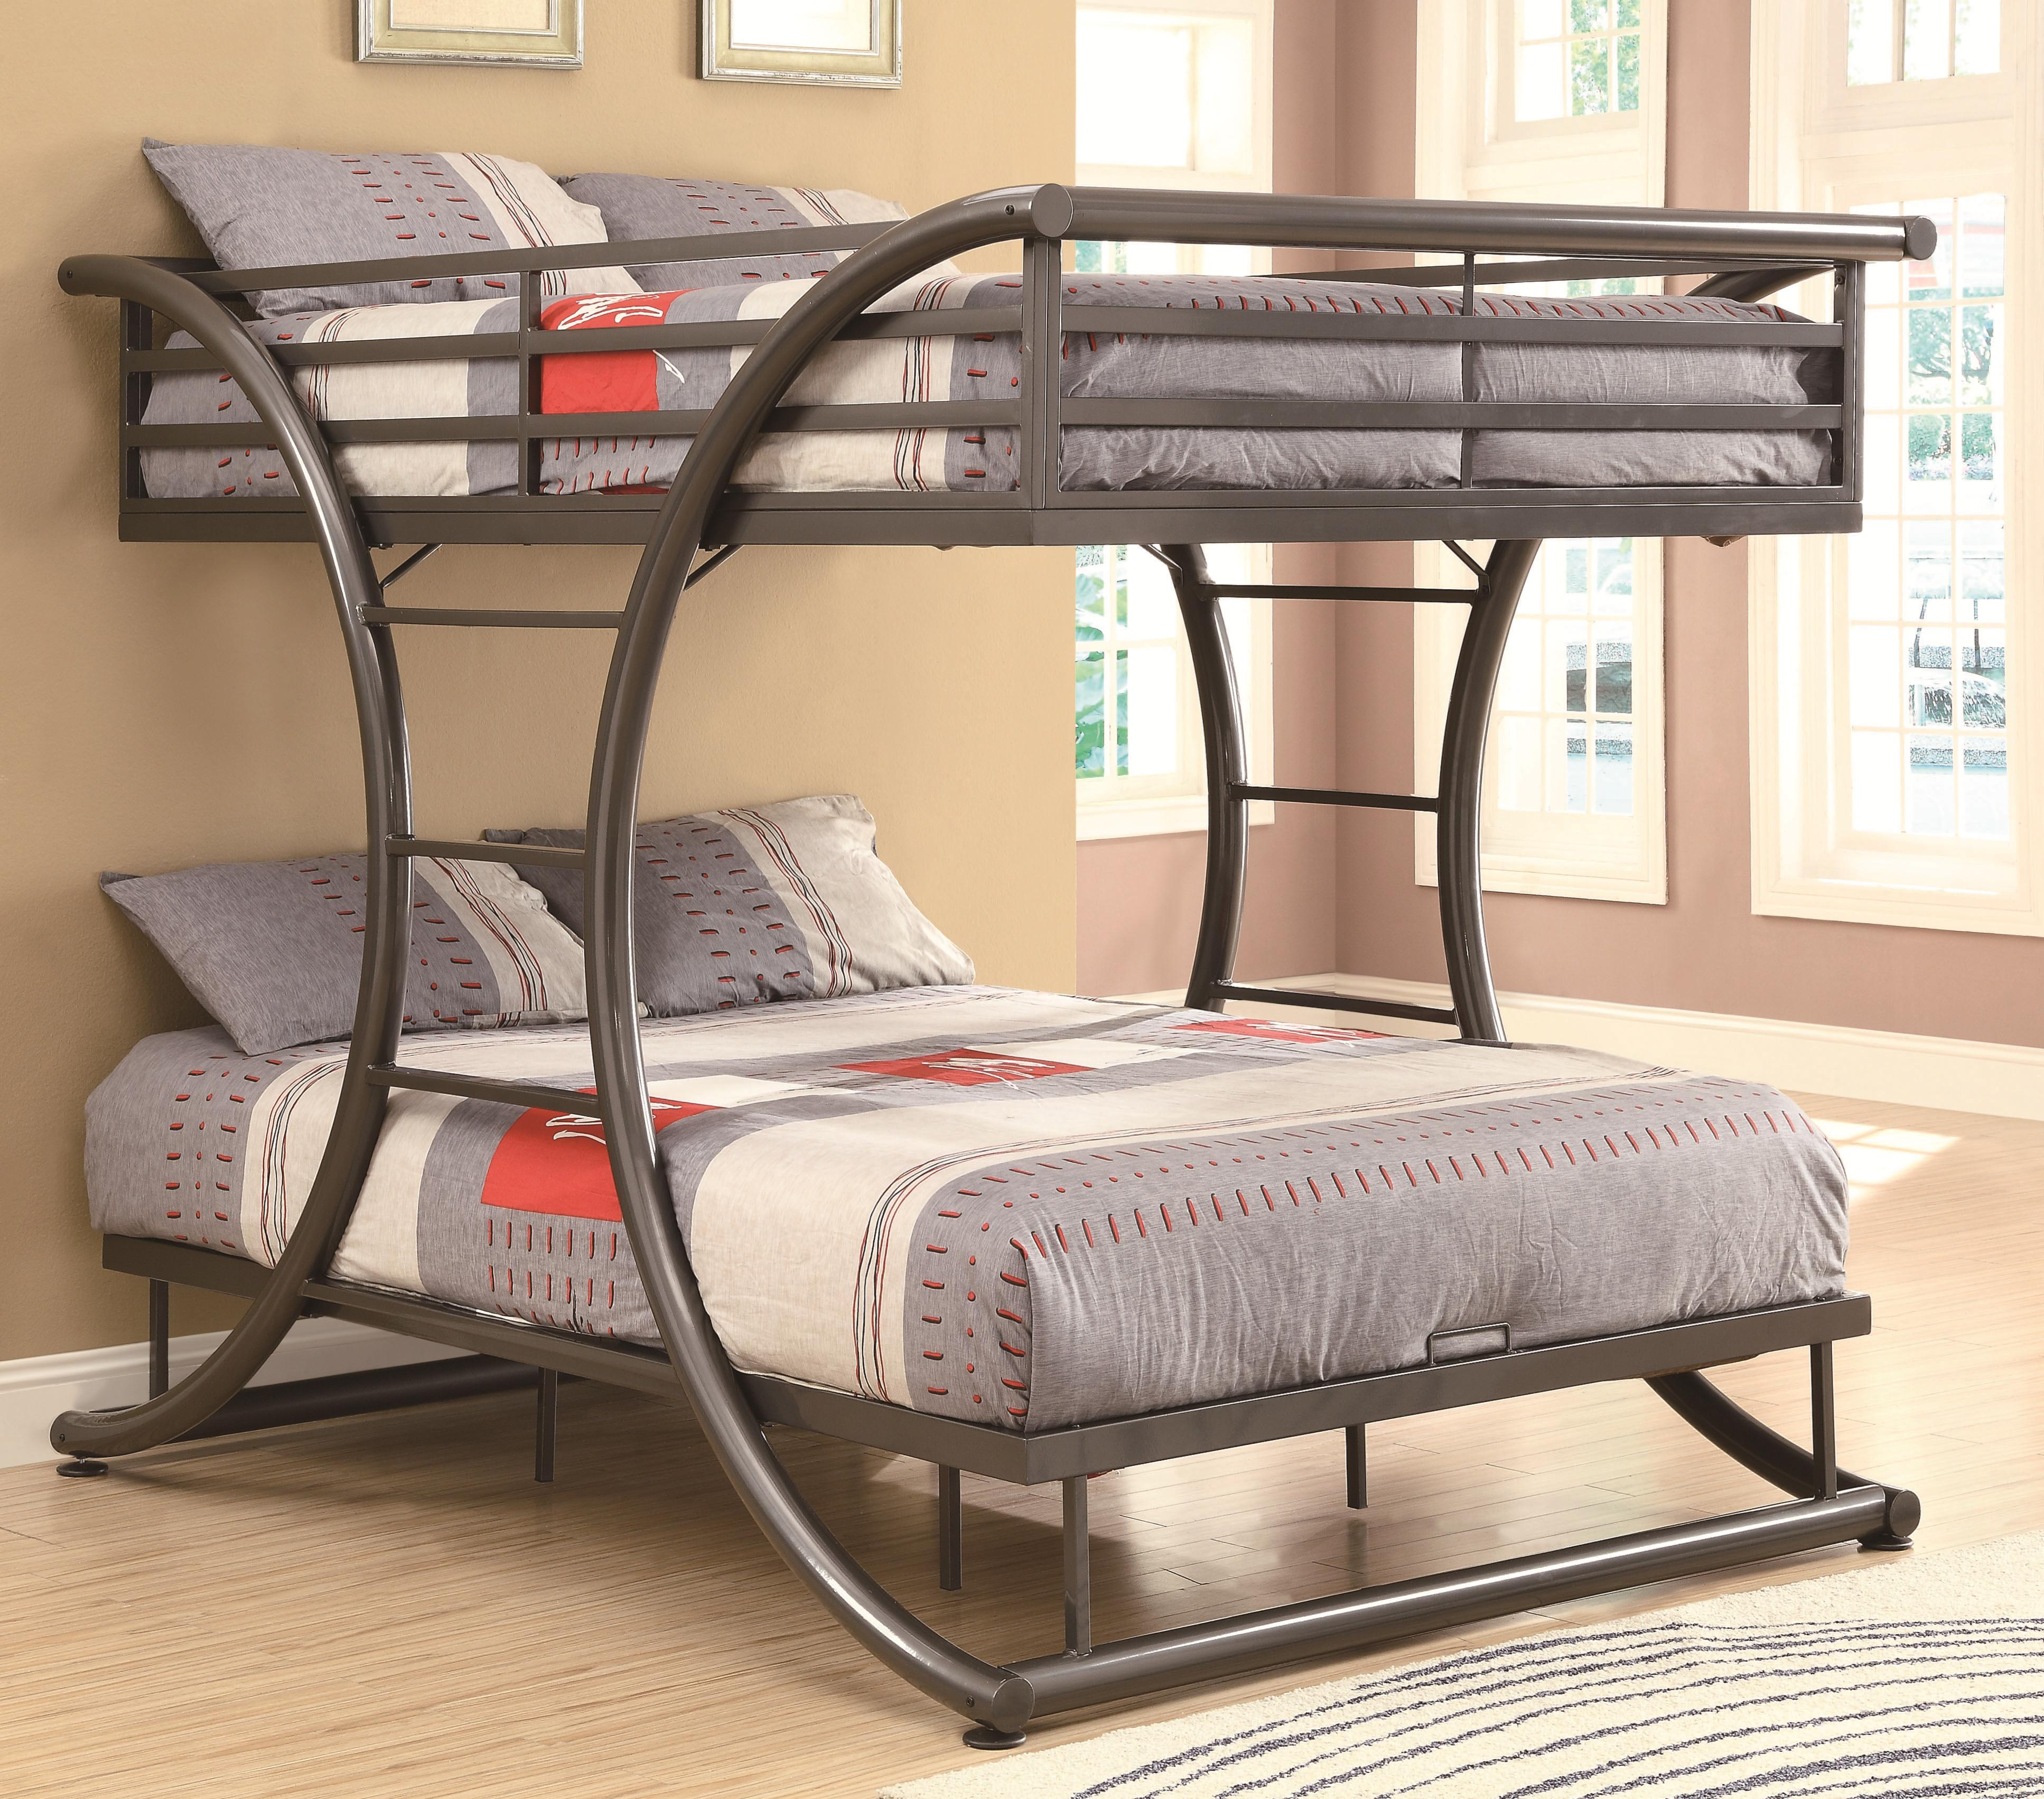 Coaster Bunks 460078 Full Over Full Contemporary Bunk Bed Dunk